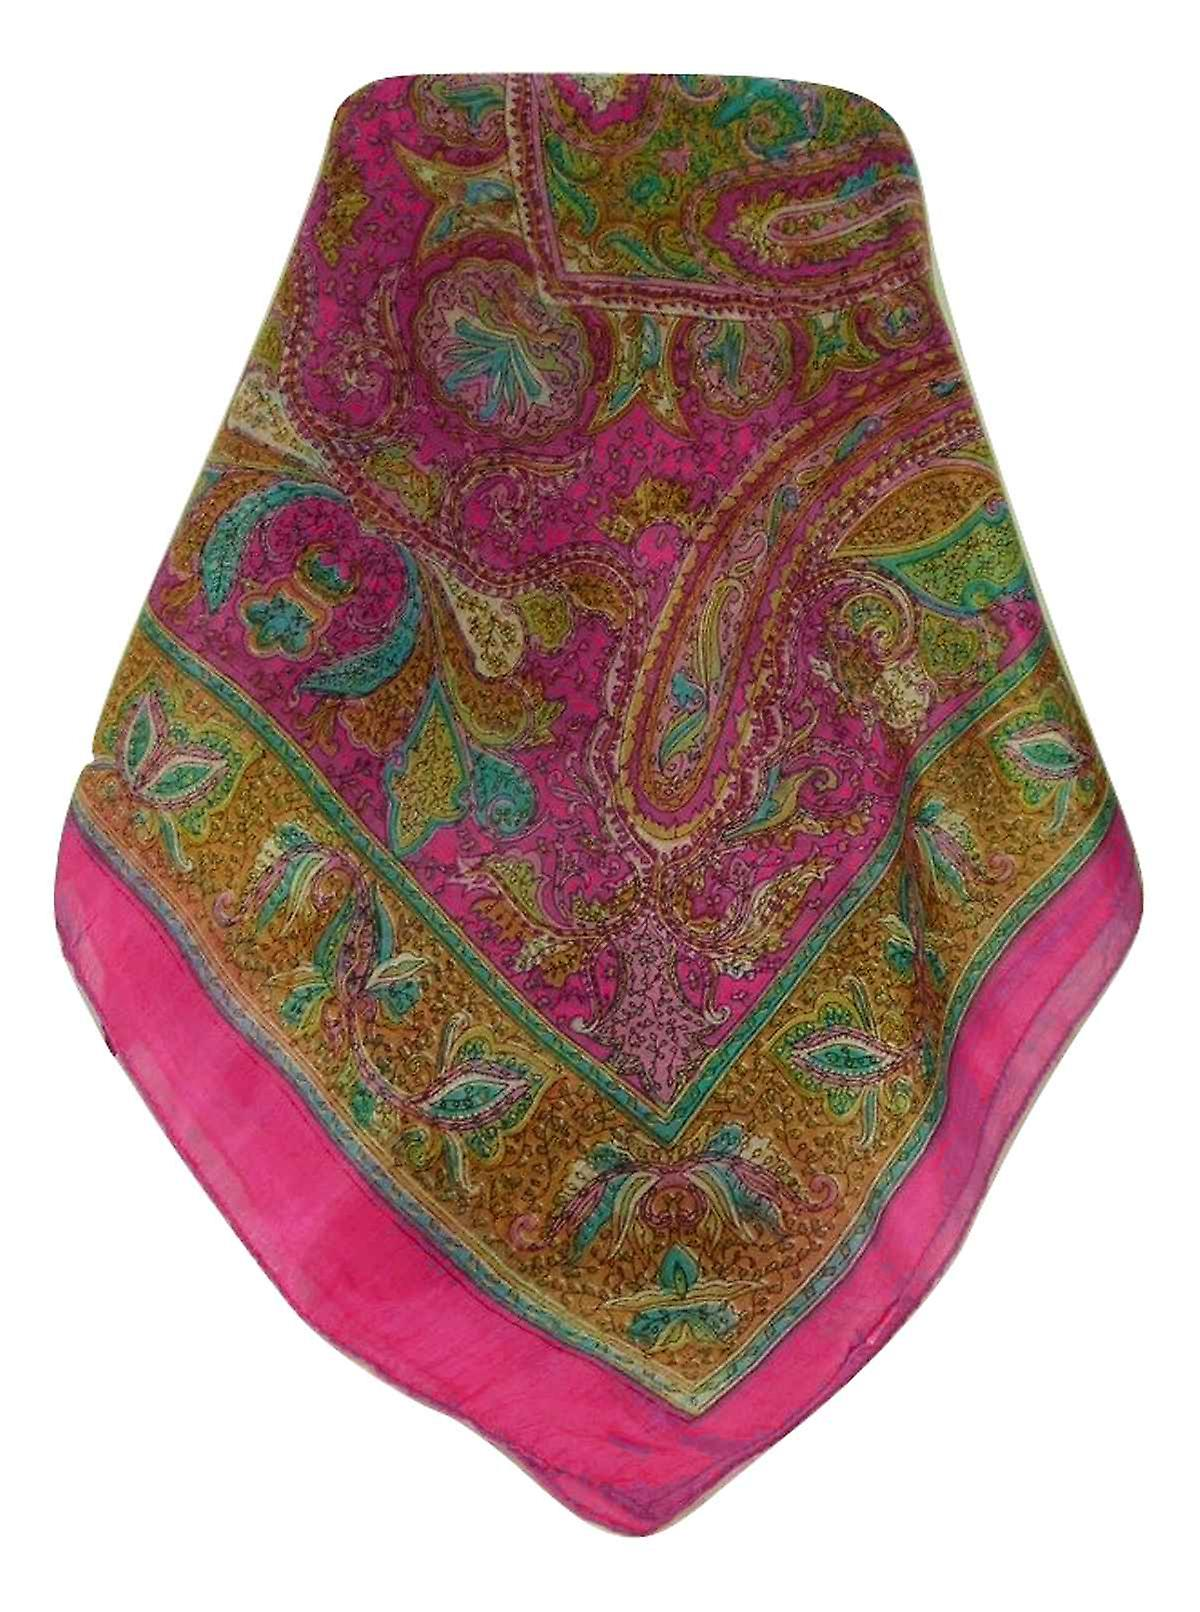 Mulberry Silk Traditional Long Scarf Ramsej Pink by Pashmina & Silk